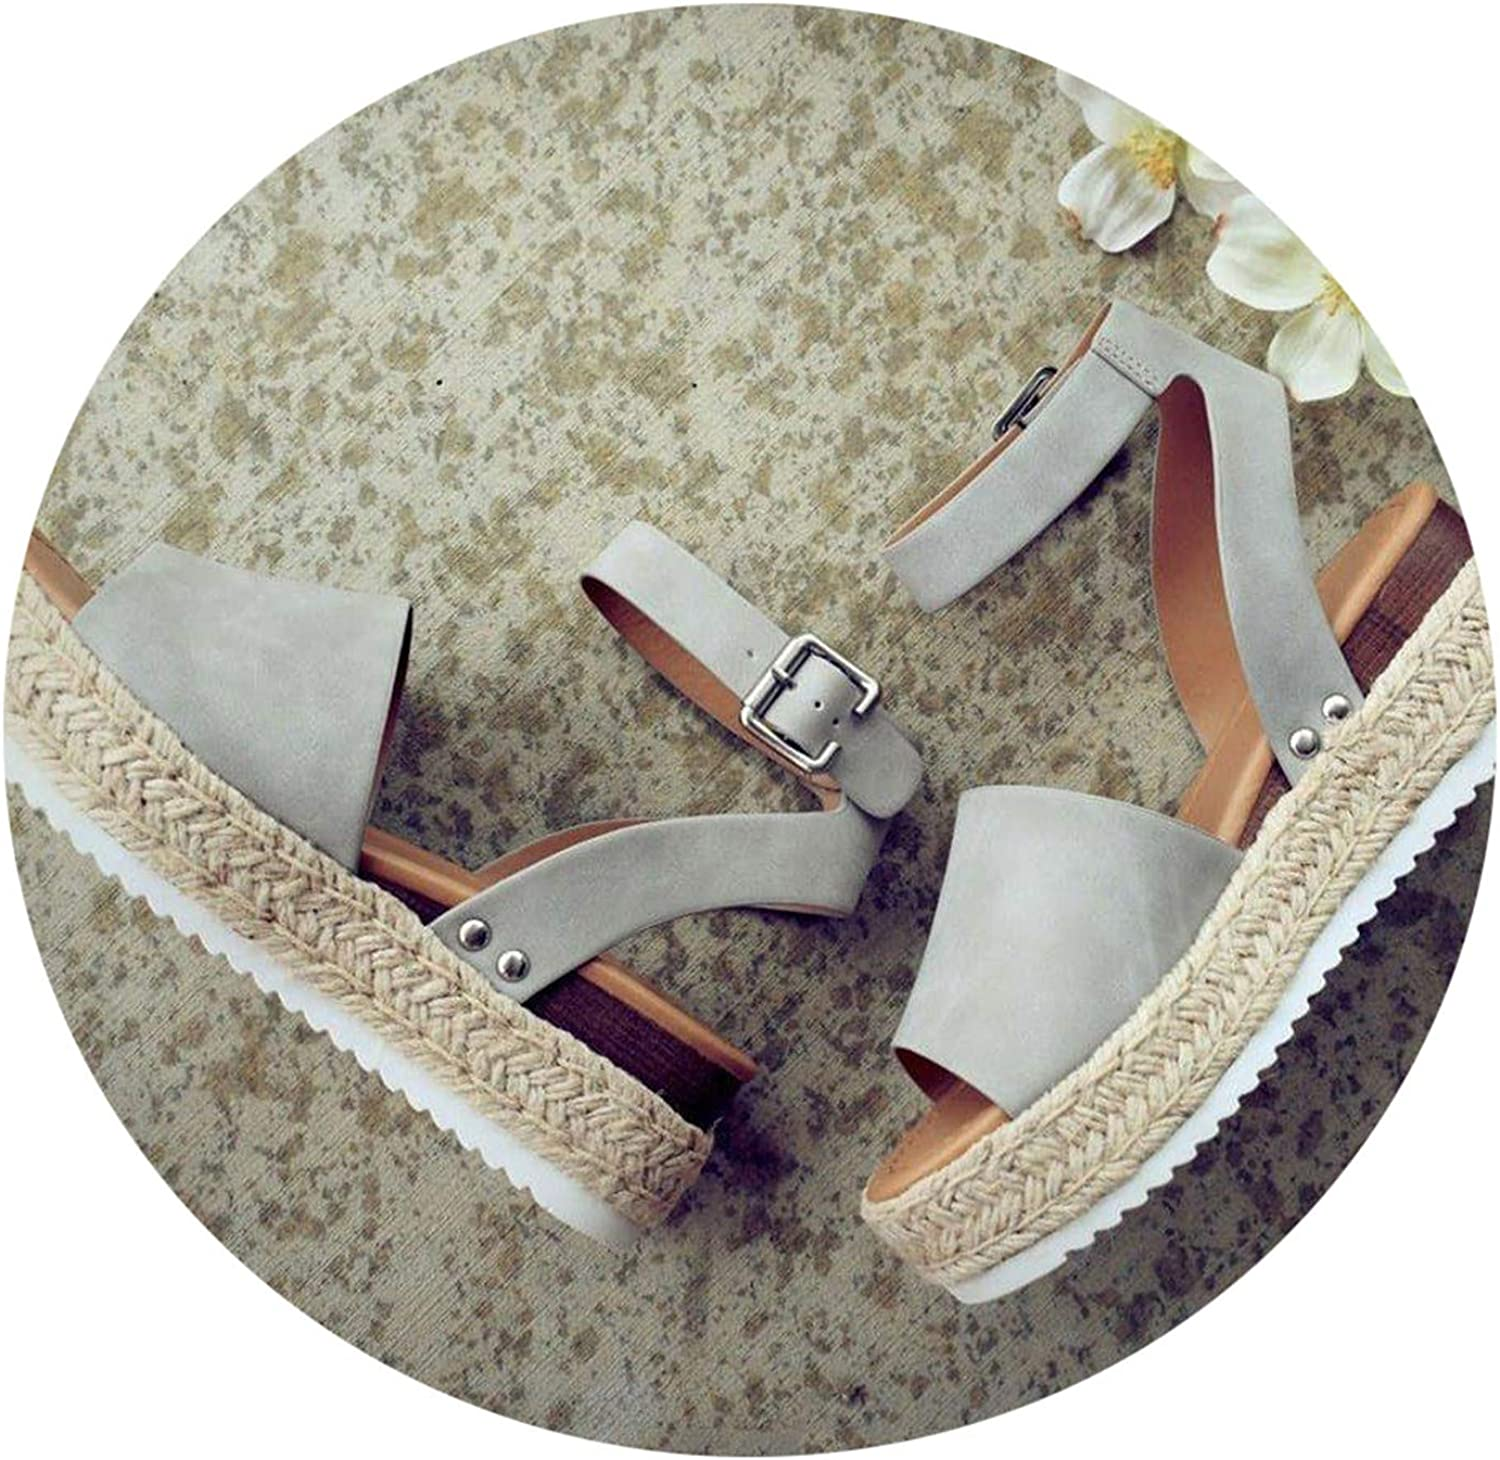 Wedges shoes High Heels Sandals Summer shoes Flip Flop shoes Femme Platform Sandals